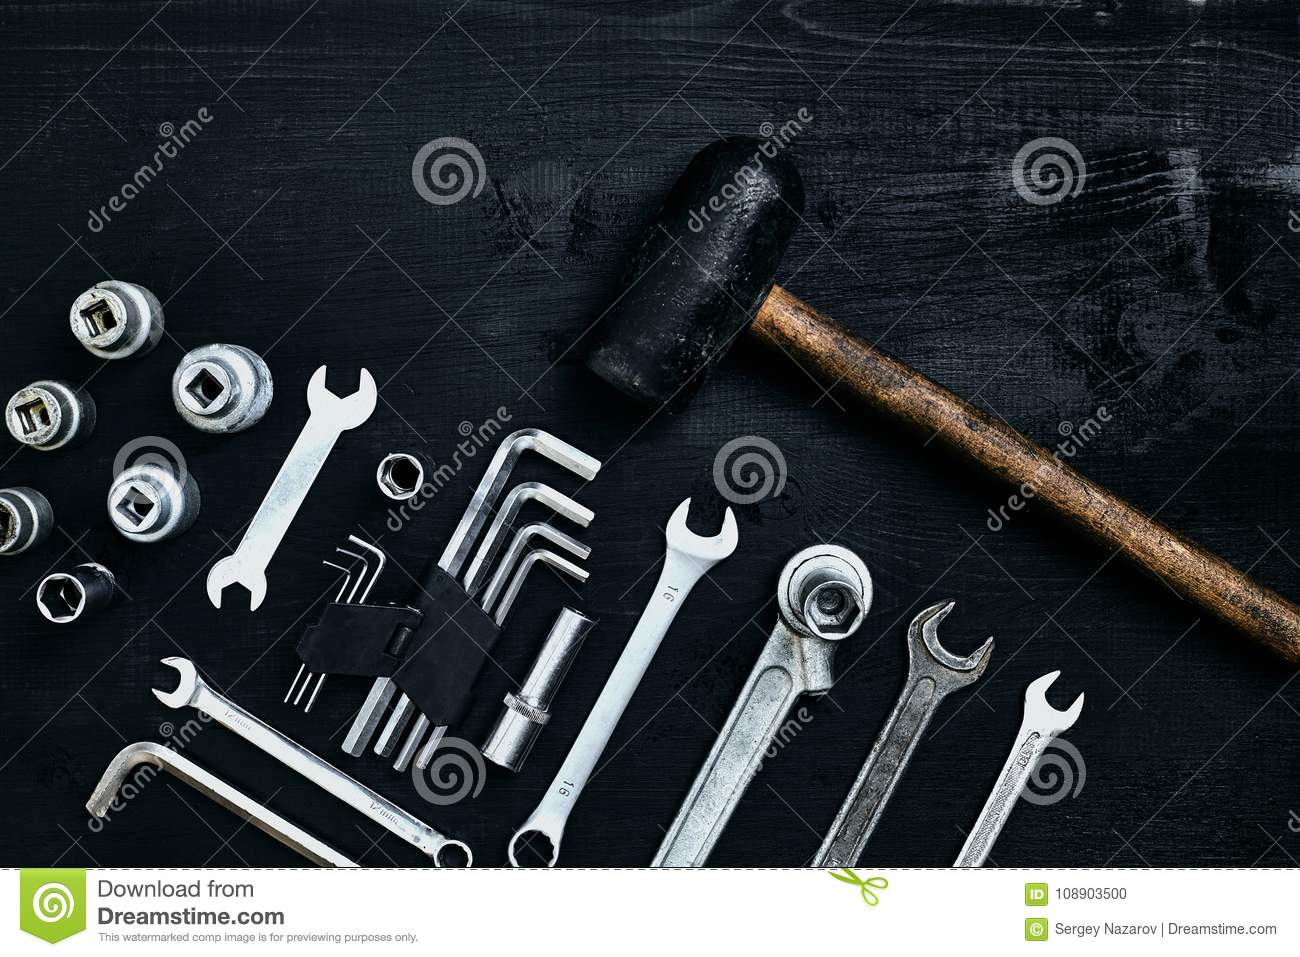 Renovating a car. A set of repair tools- hex keys, a hammer and a screwdriver on a black wooden background. Close up